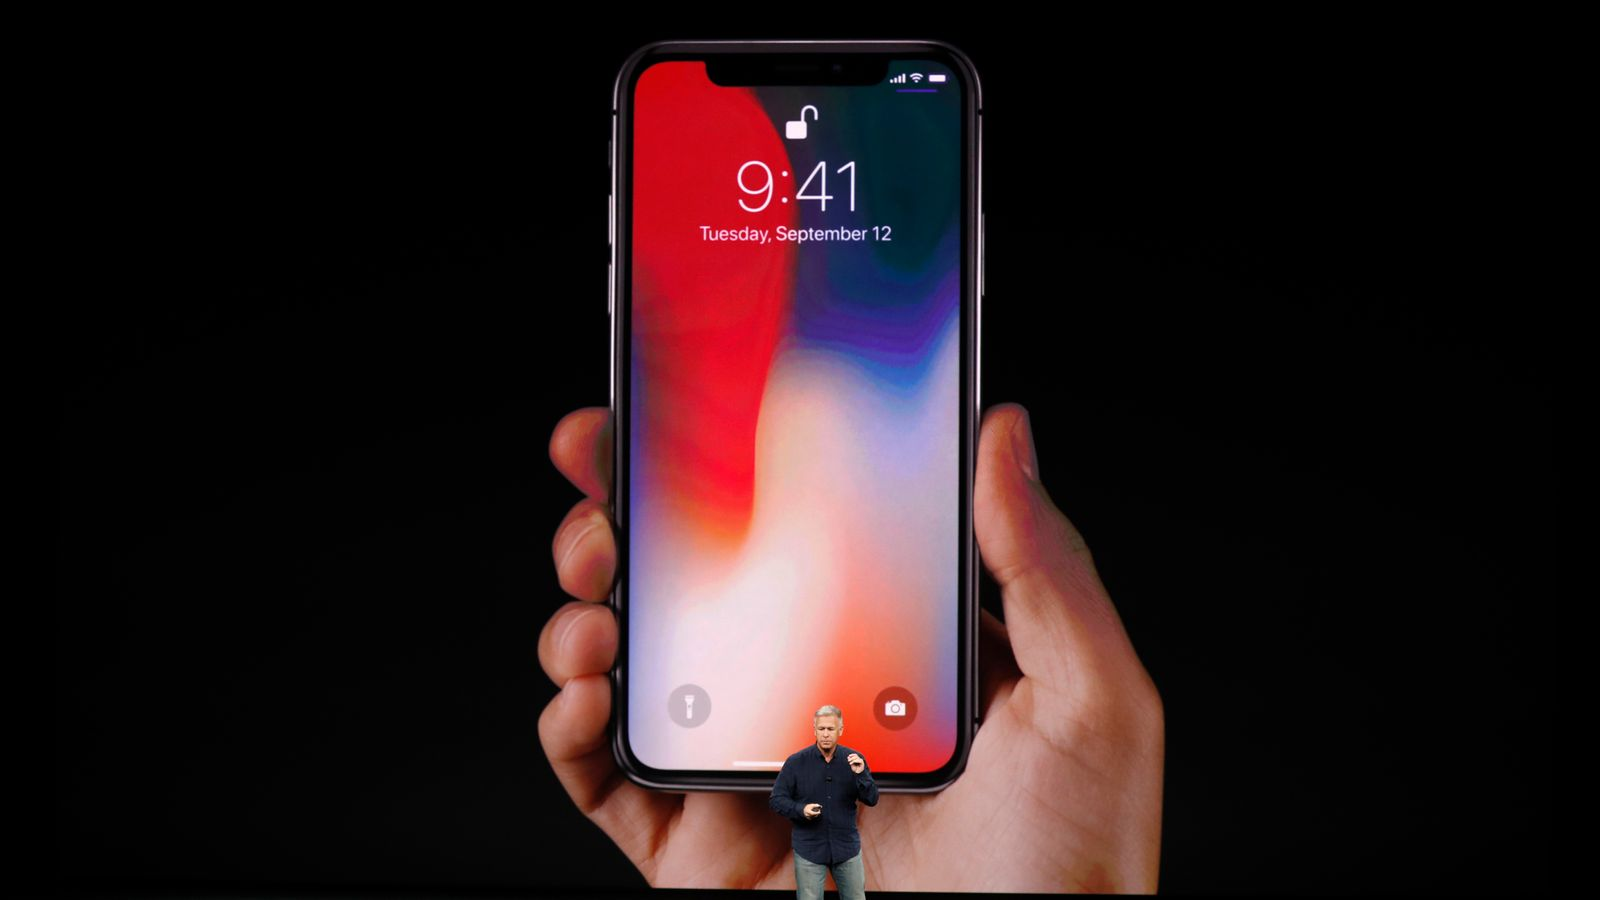 59691b9c93 The iPhone X, pronounced 10, features wireless charging, an infrared camera  and improved battery life, and will cost £999 when it is made available on  3 ...